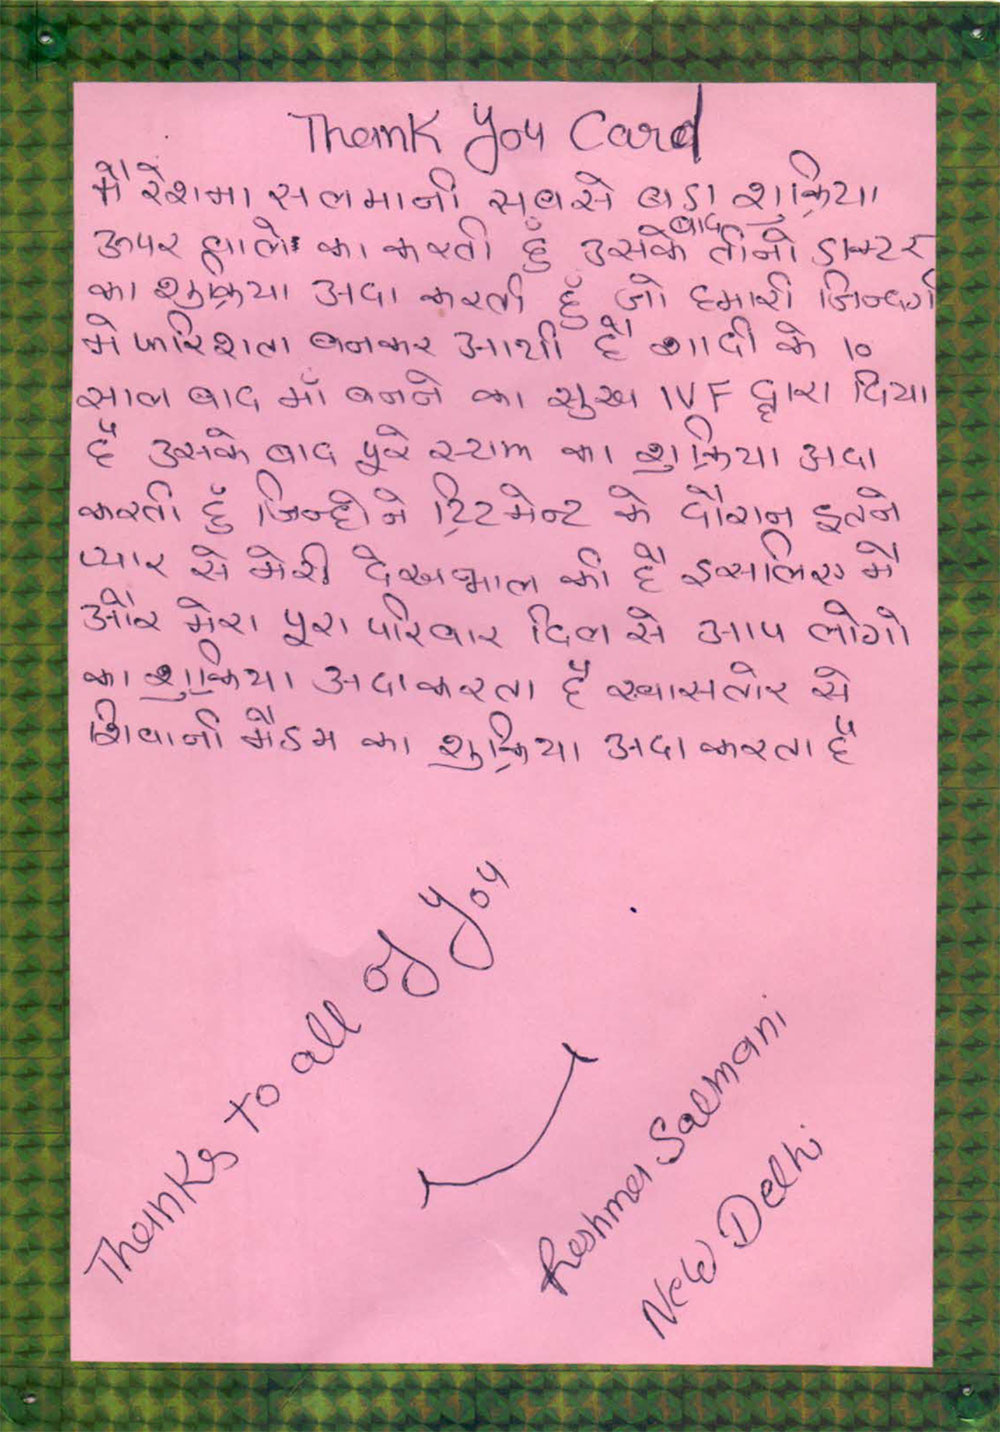 Thank you Card for Dr Shivani Clinic